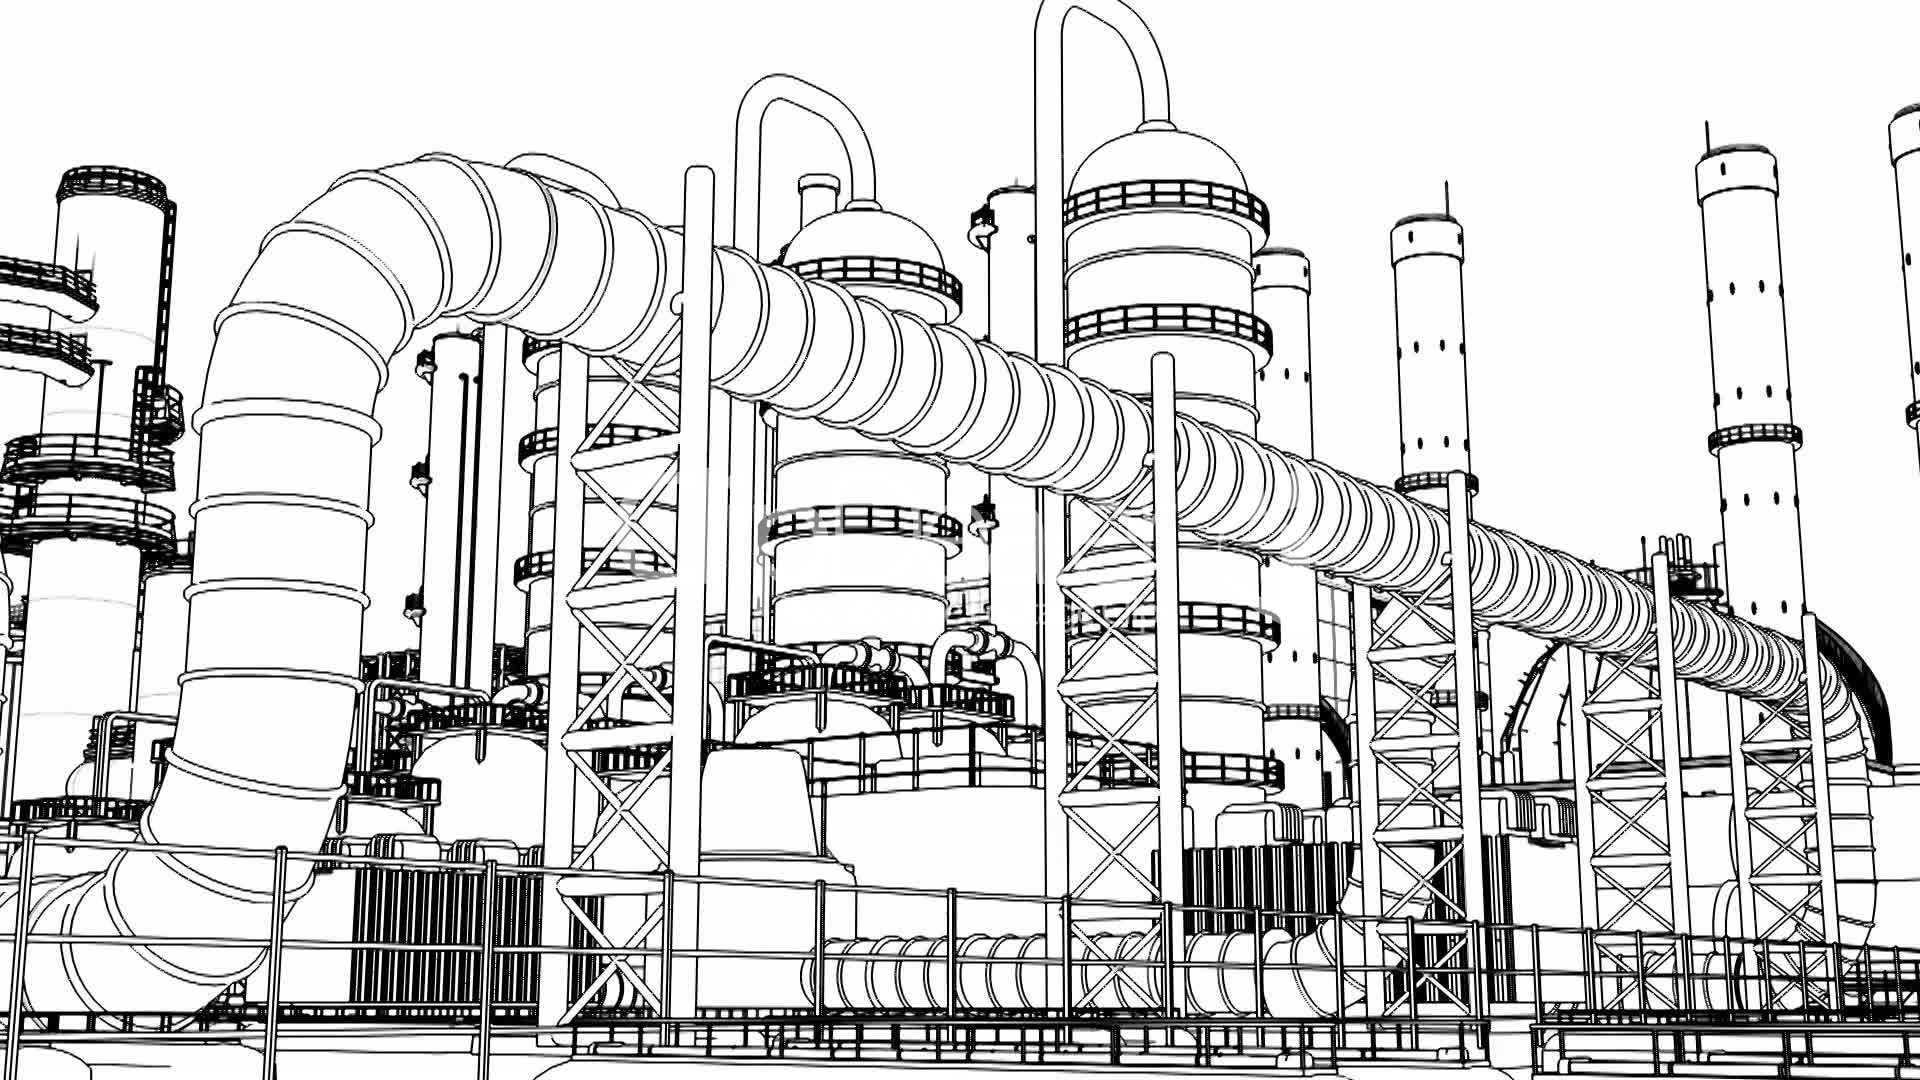 Chemical Plant, wire frame: Royalty-free video and stock